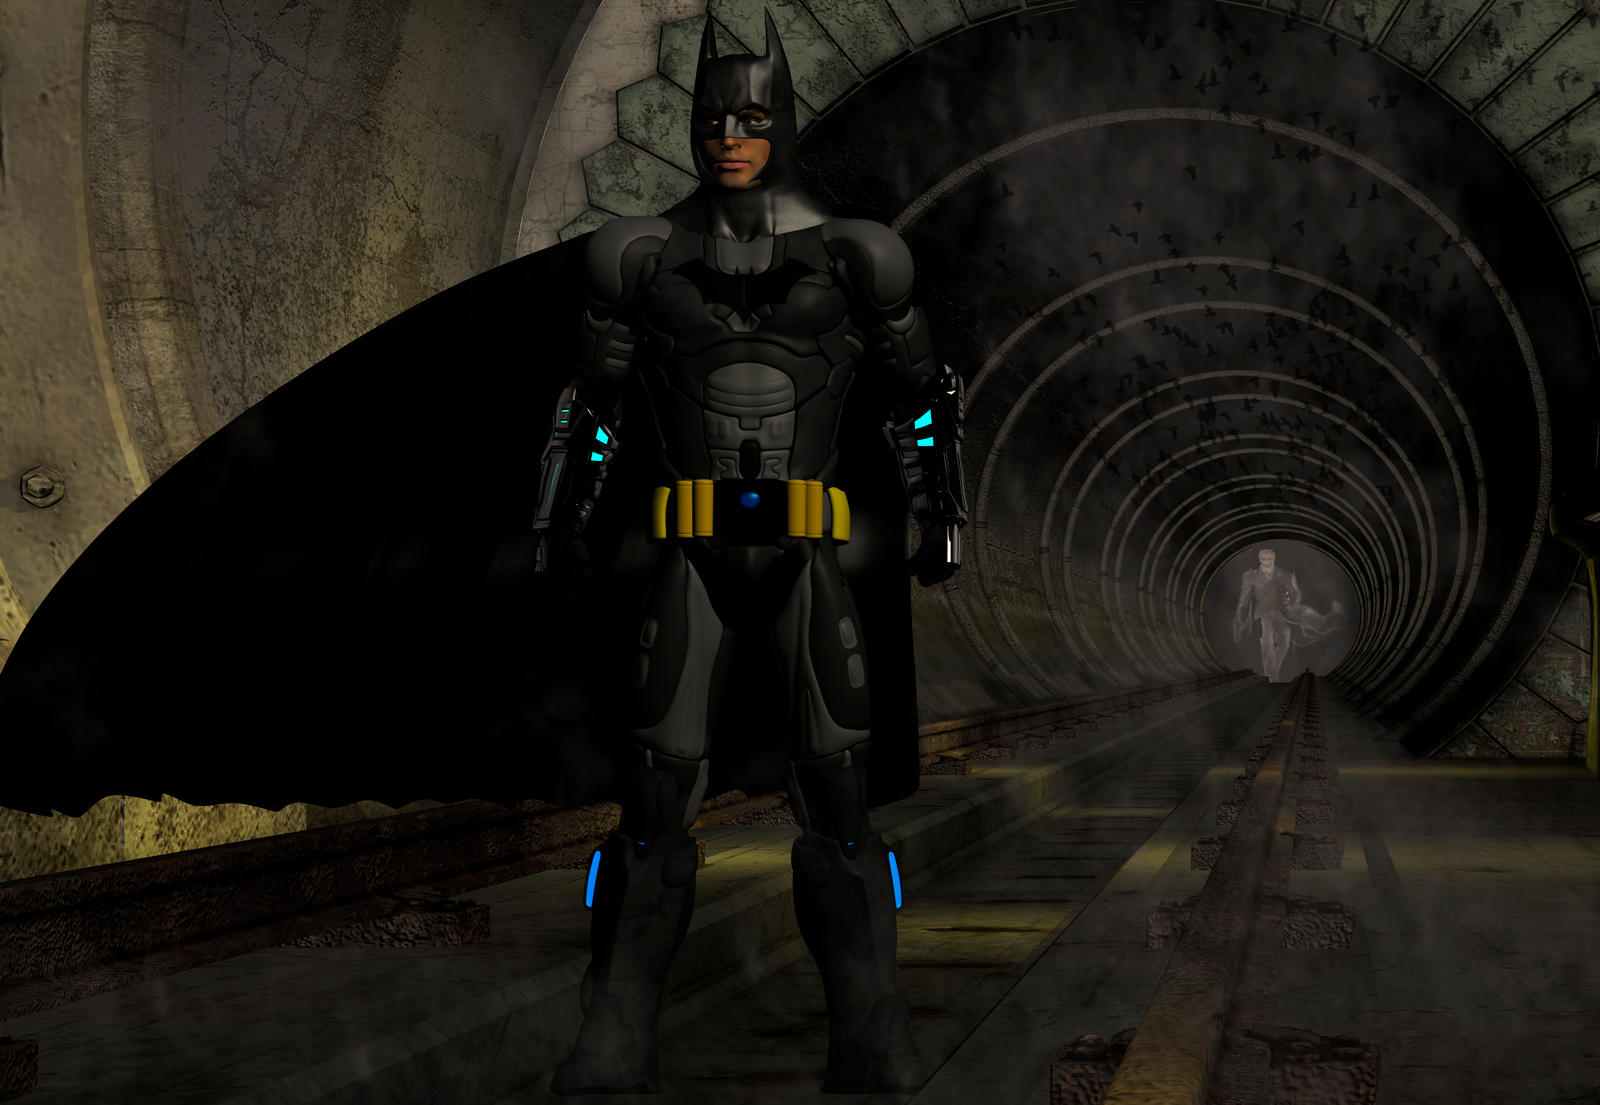 Batman in the tube by hiram67